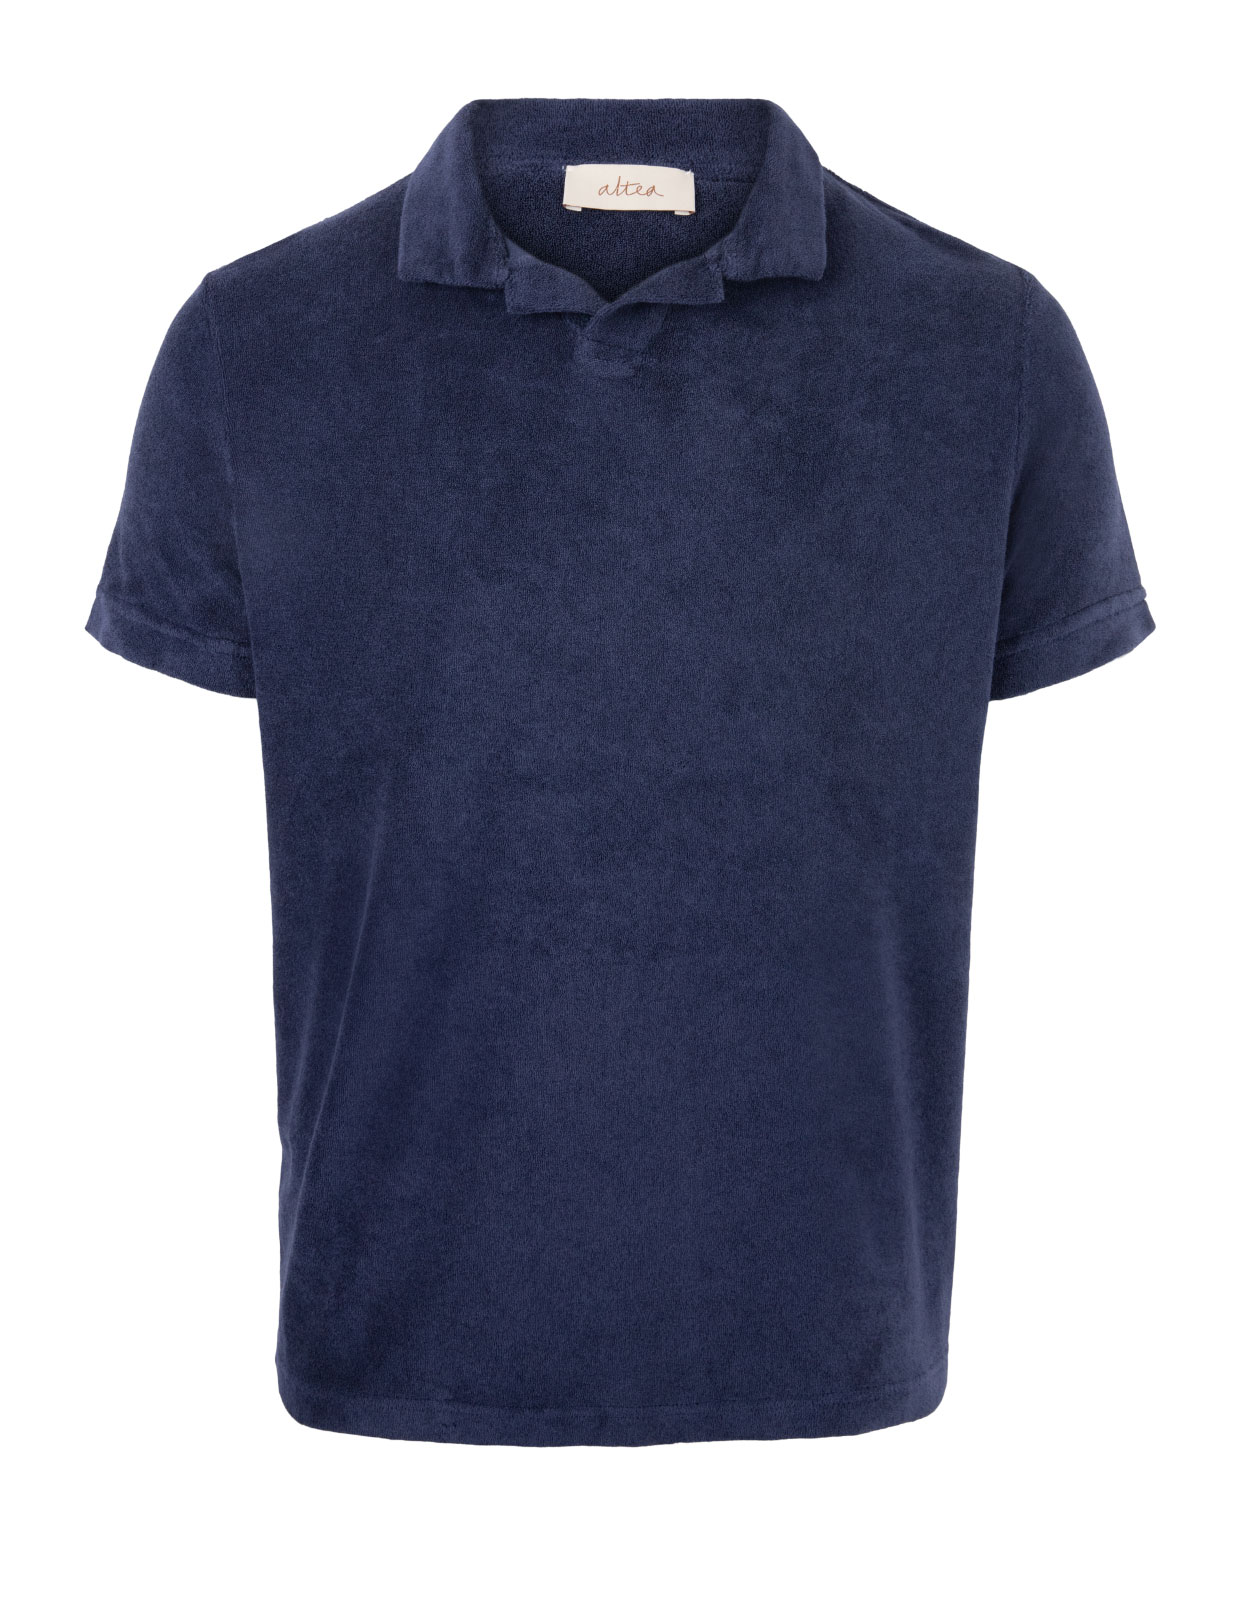 Dennis Terry Polo Shirt Navy